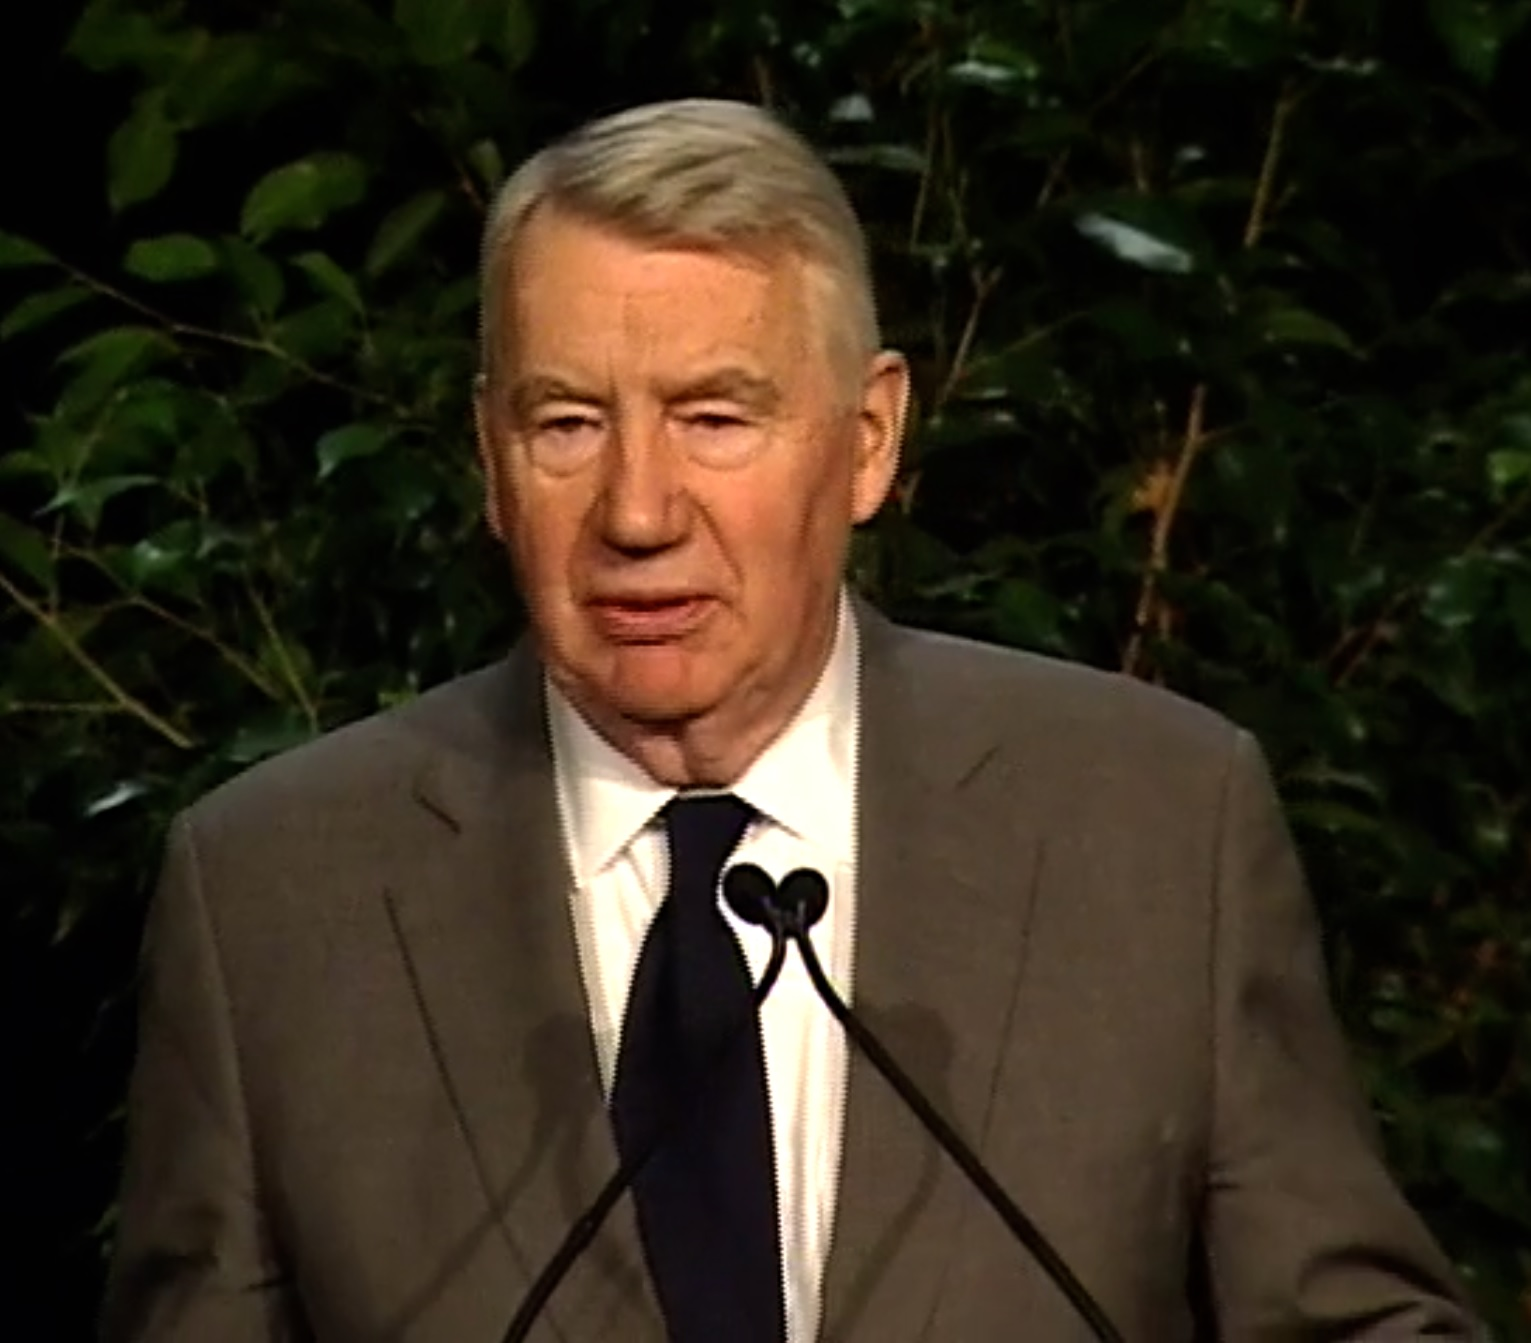 MacNeil accepting the 2008 [[Walter Cronkite Award for Excellence in Journalism|Cronkite Award]]